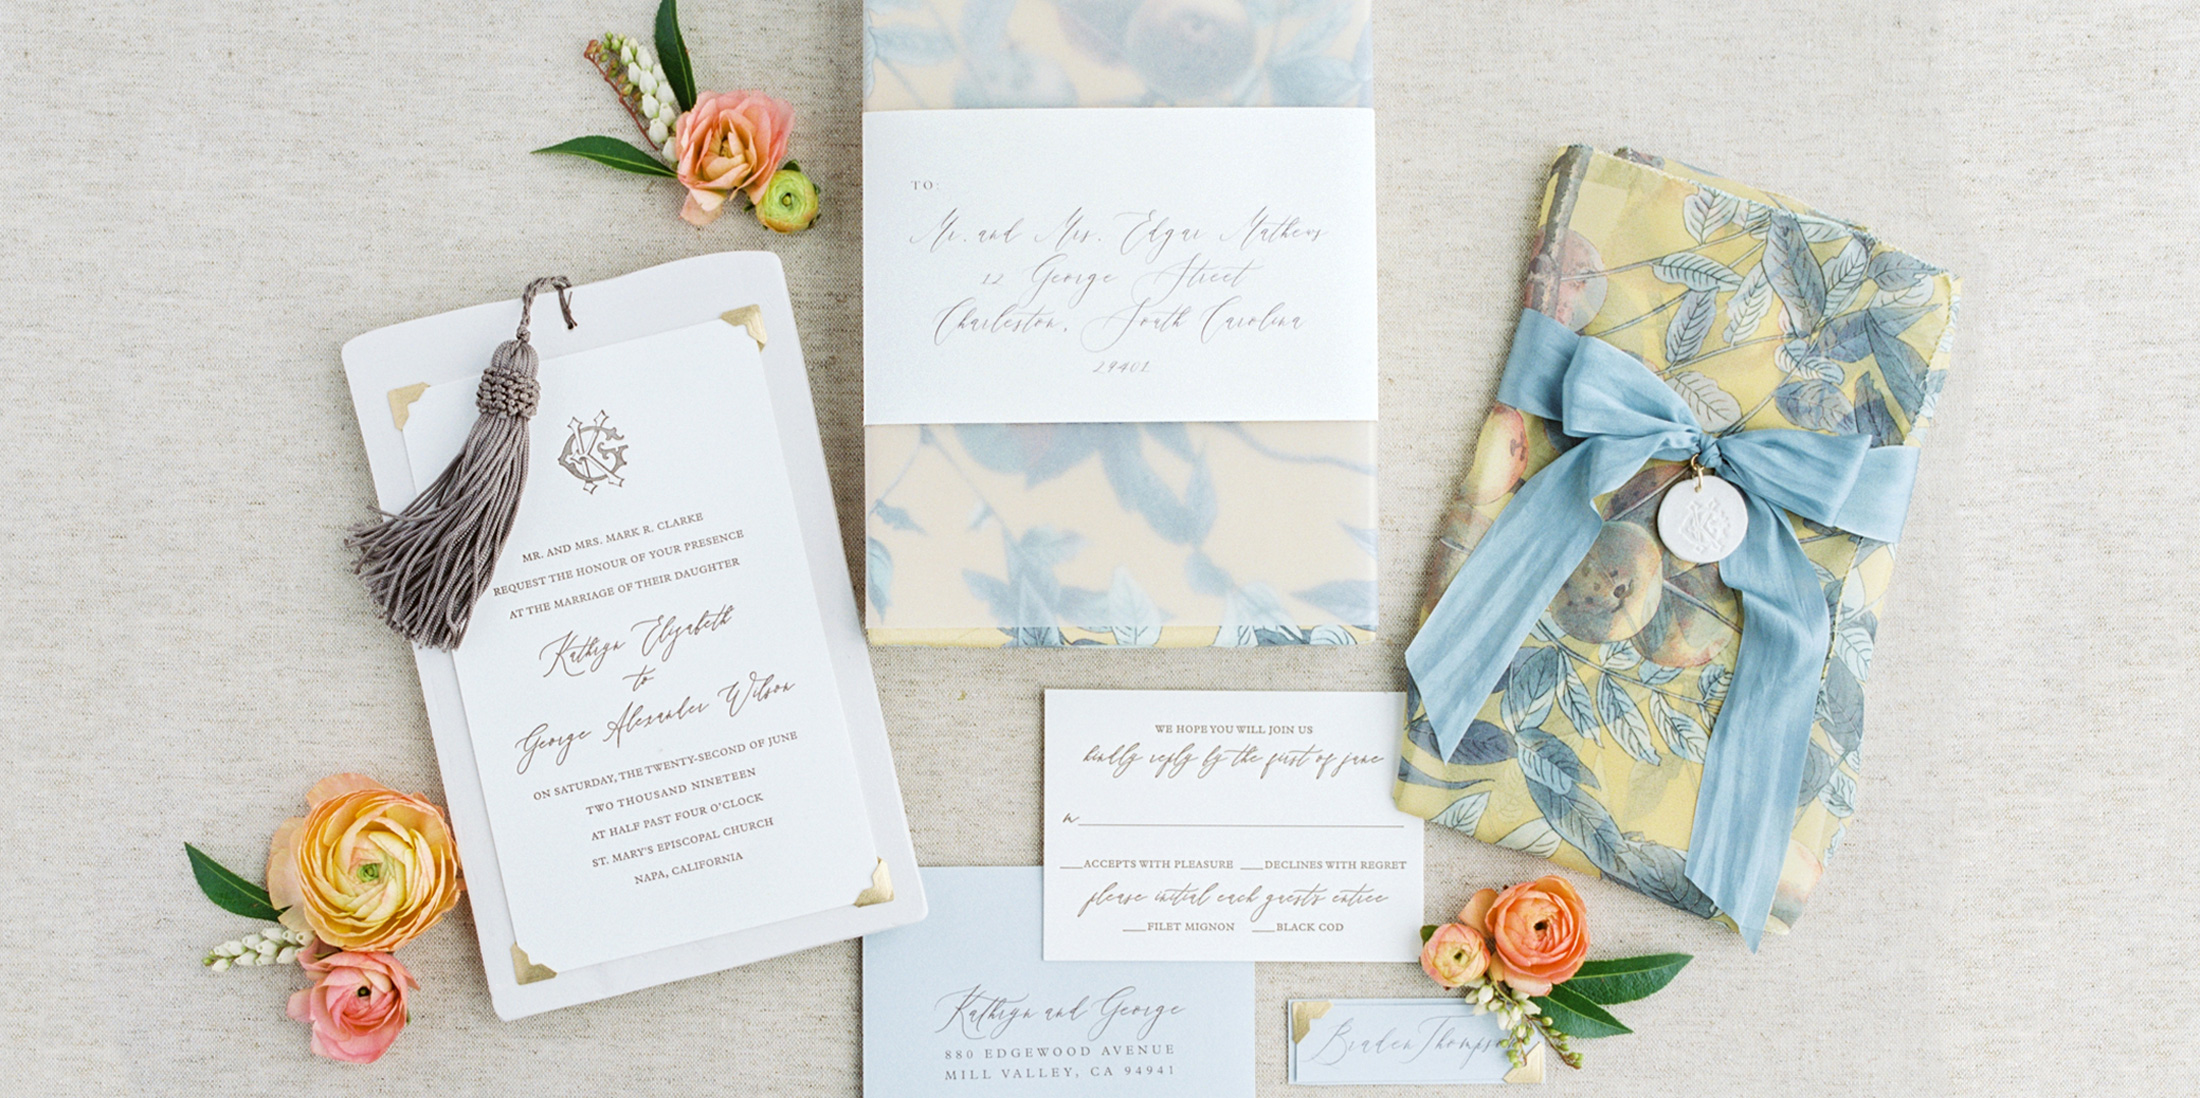 Tie_That_Binds_Luxury_WeddingInvitations00004.jpg